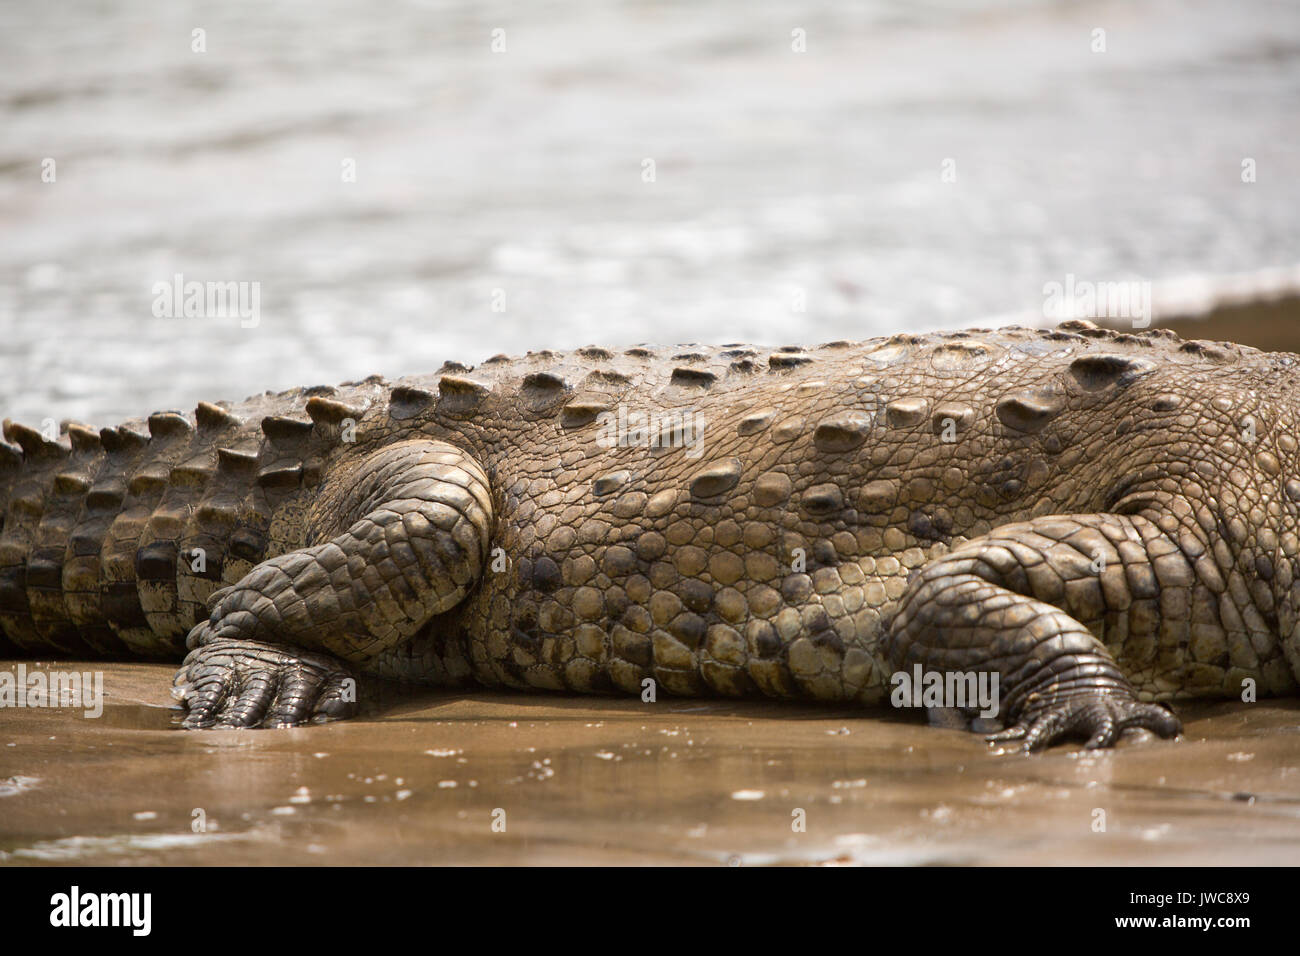 In Isla Coiba National Park,the details of an american crocodile's tough,scaly skin is visible resting in the water. - Stock Image